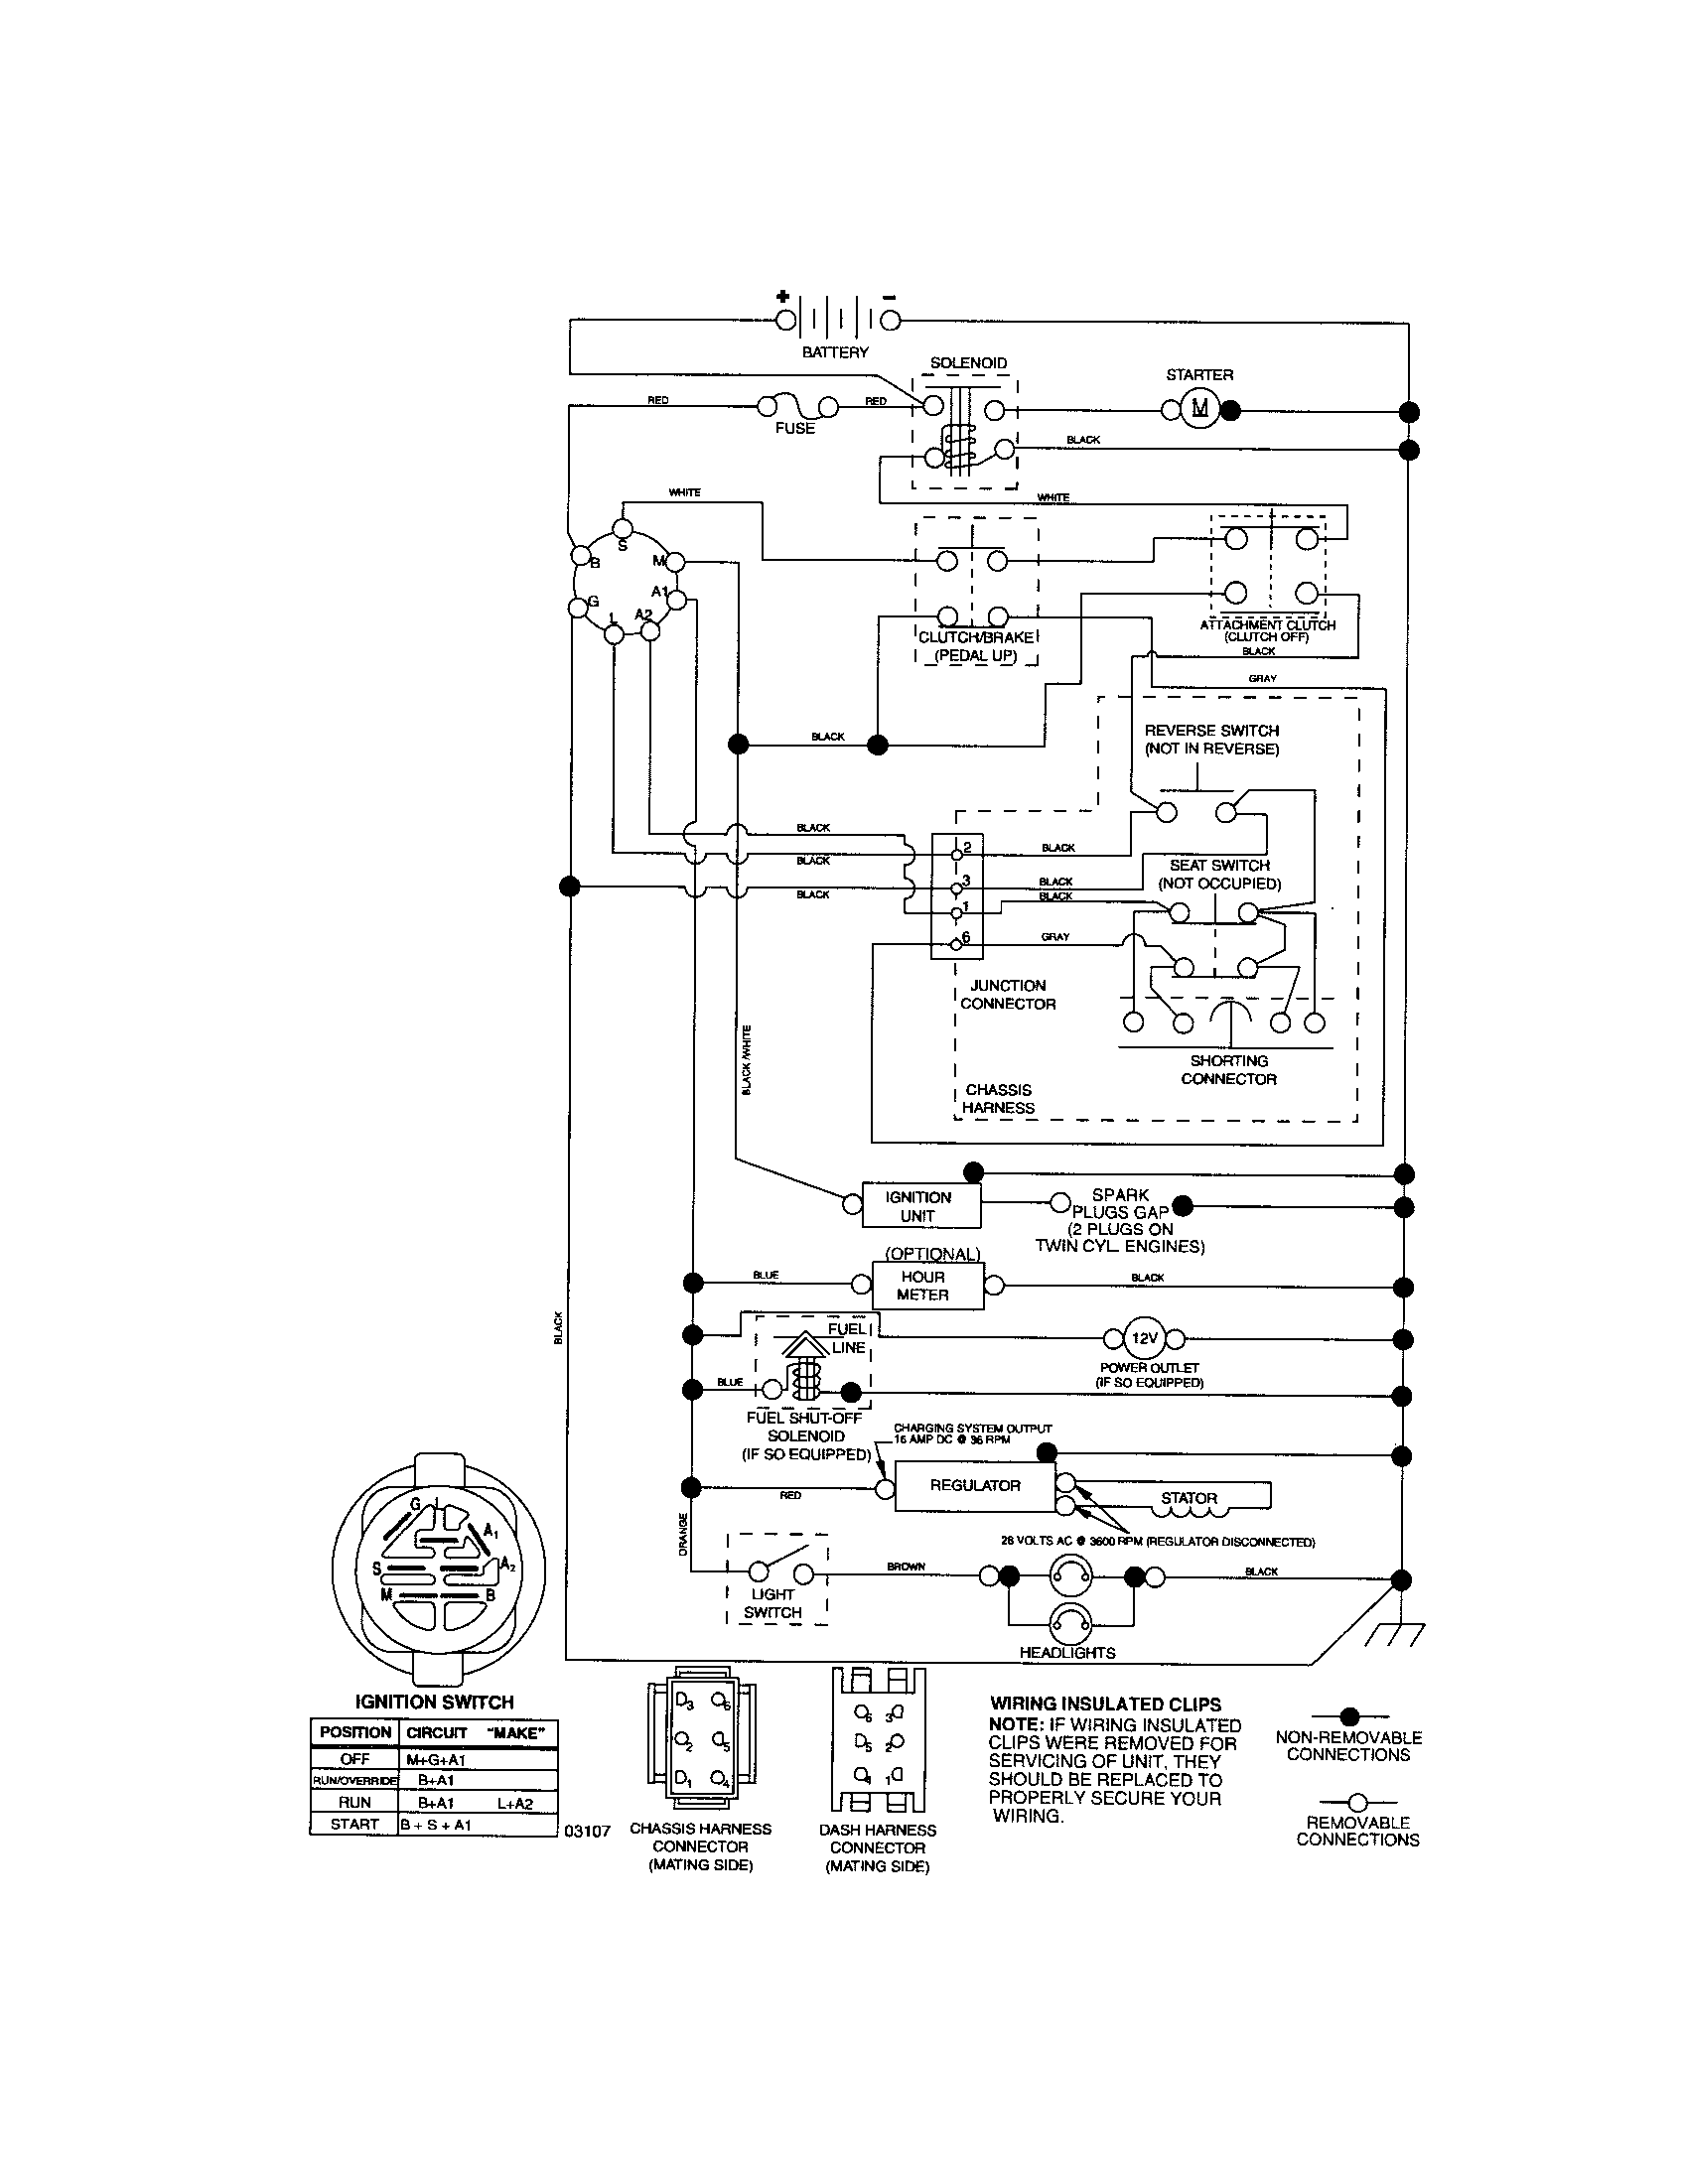 6af5f1447fd13c8443376822ddc1e105 lawn tractor wiring diagram lawn download wirning diagrams Weed Eater Replacement Parts at gsmx.co